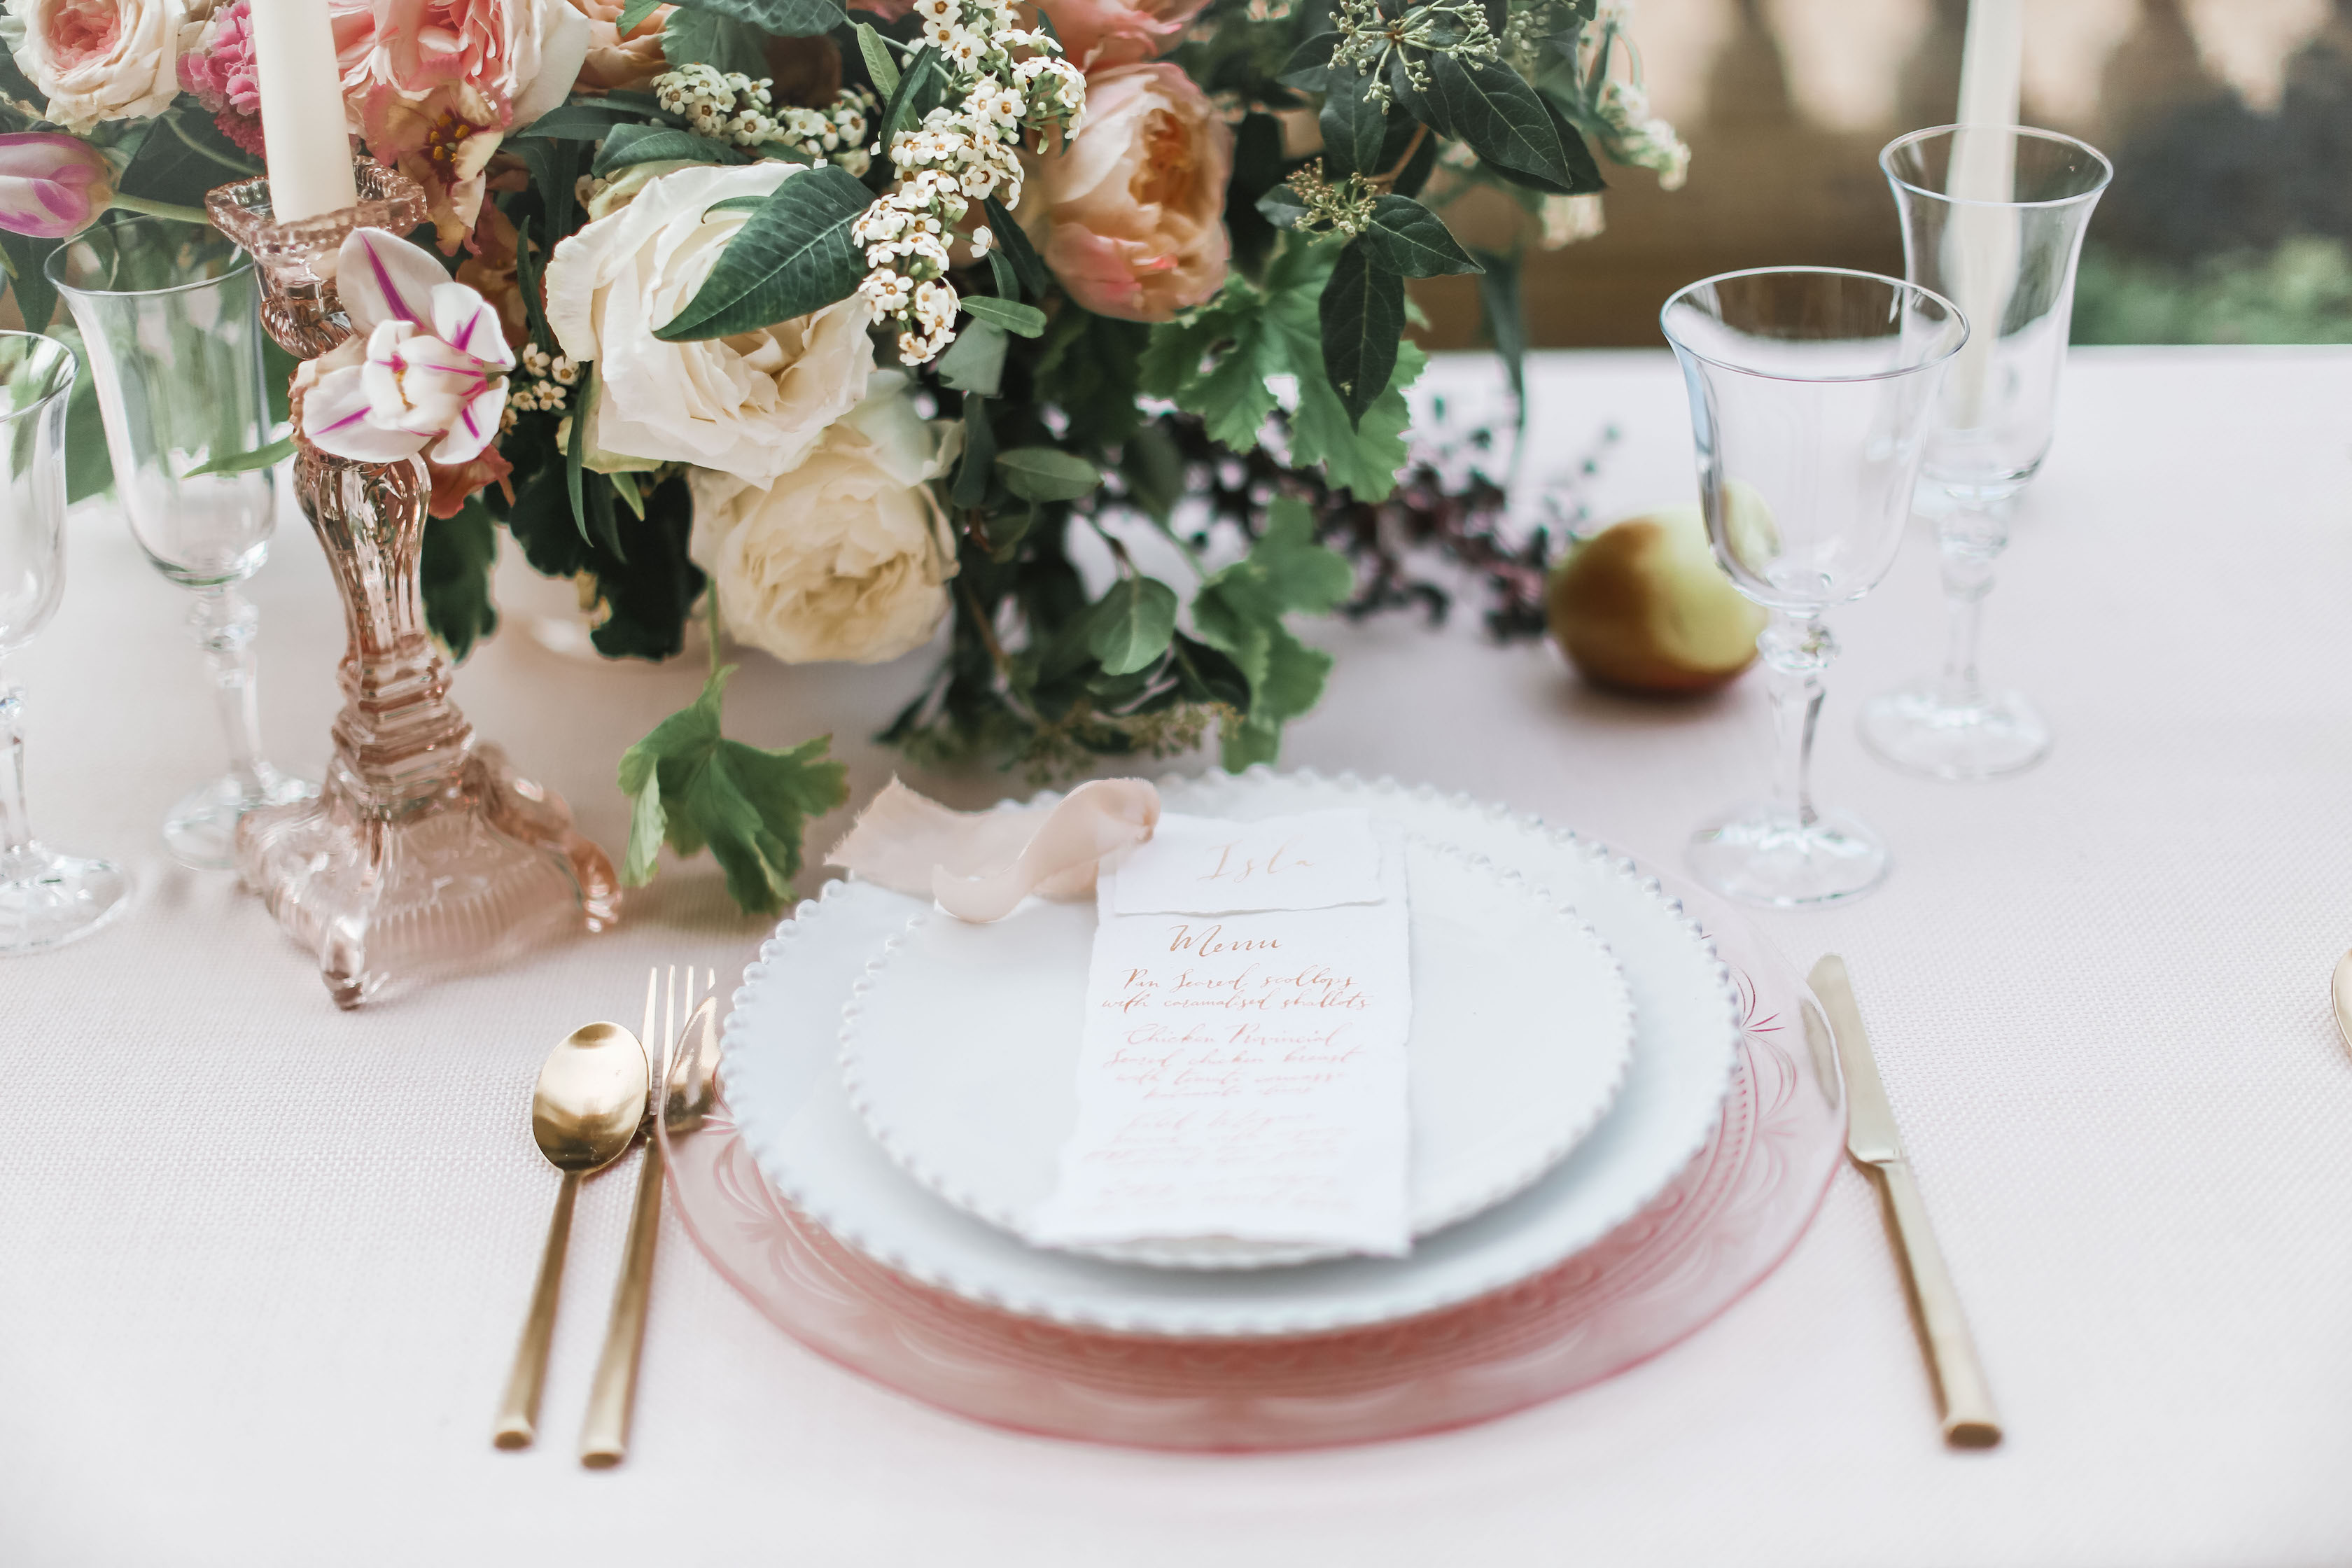 Japanese Roses Table Centrepieces - Stationery and Set-up